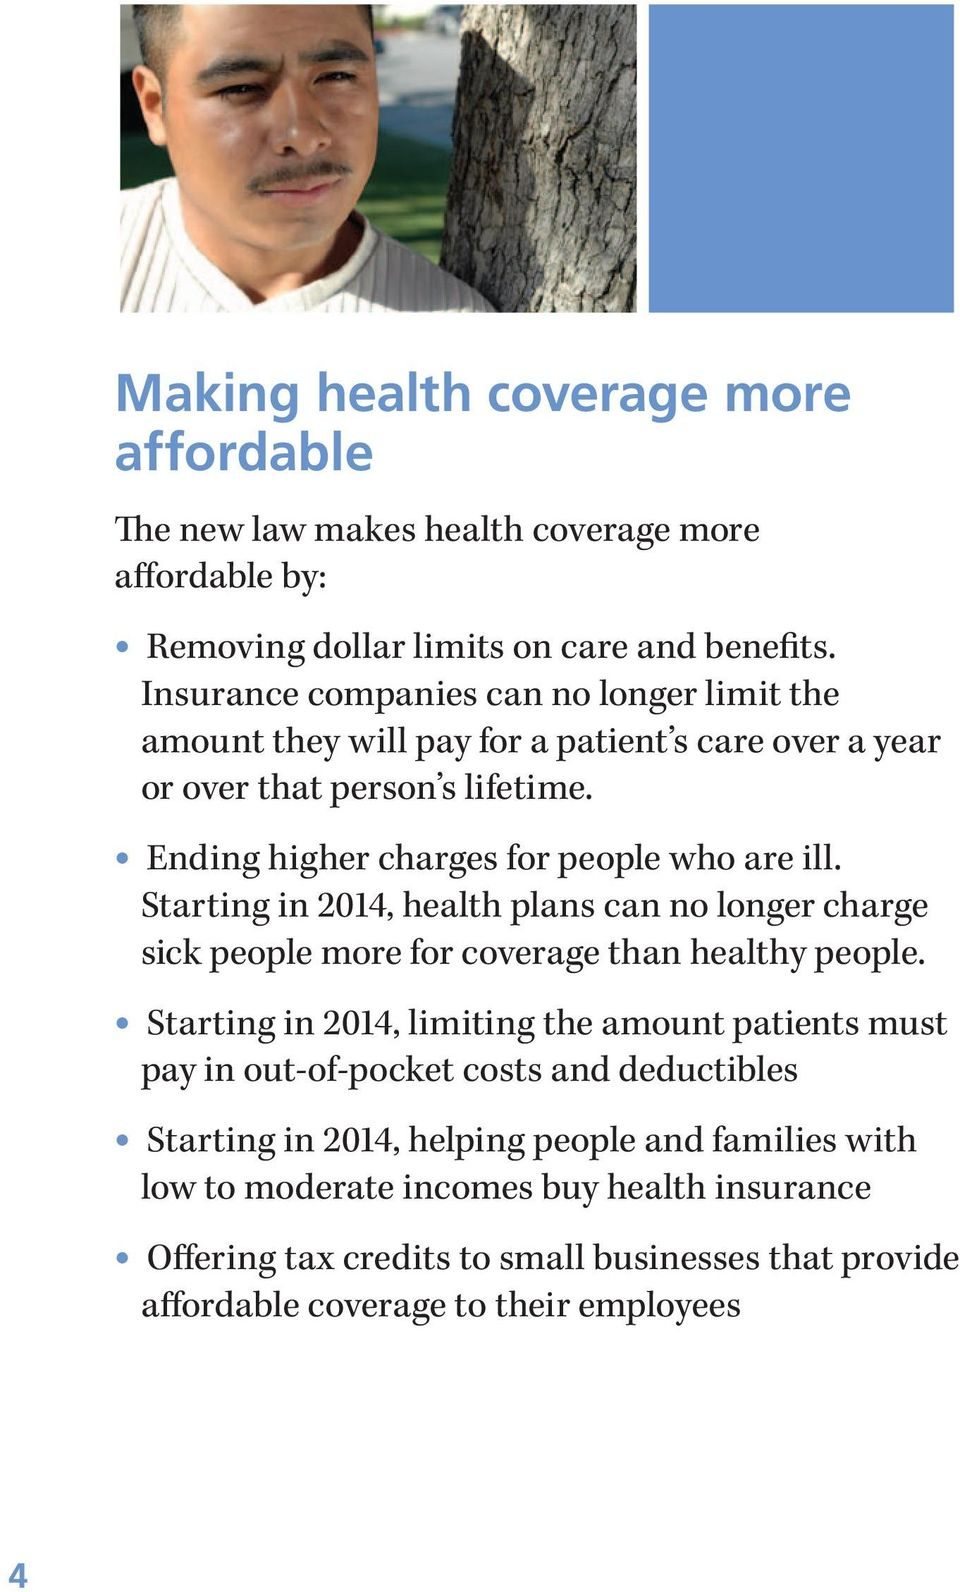 Starting in 2014, health plans can no longer charge sick people more for coverage than healthy people.